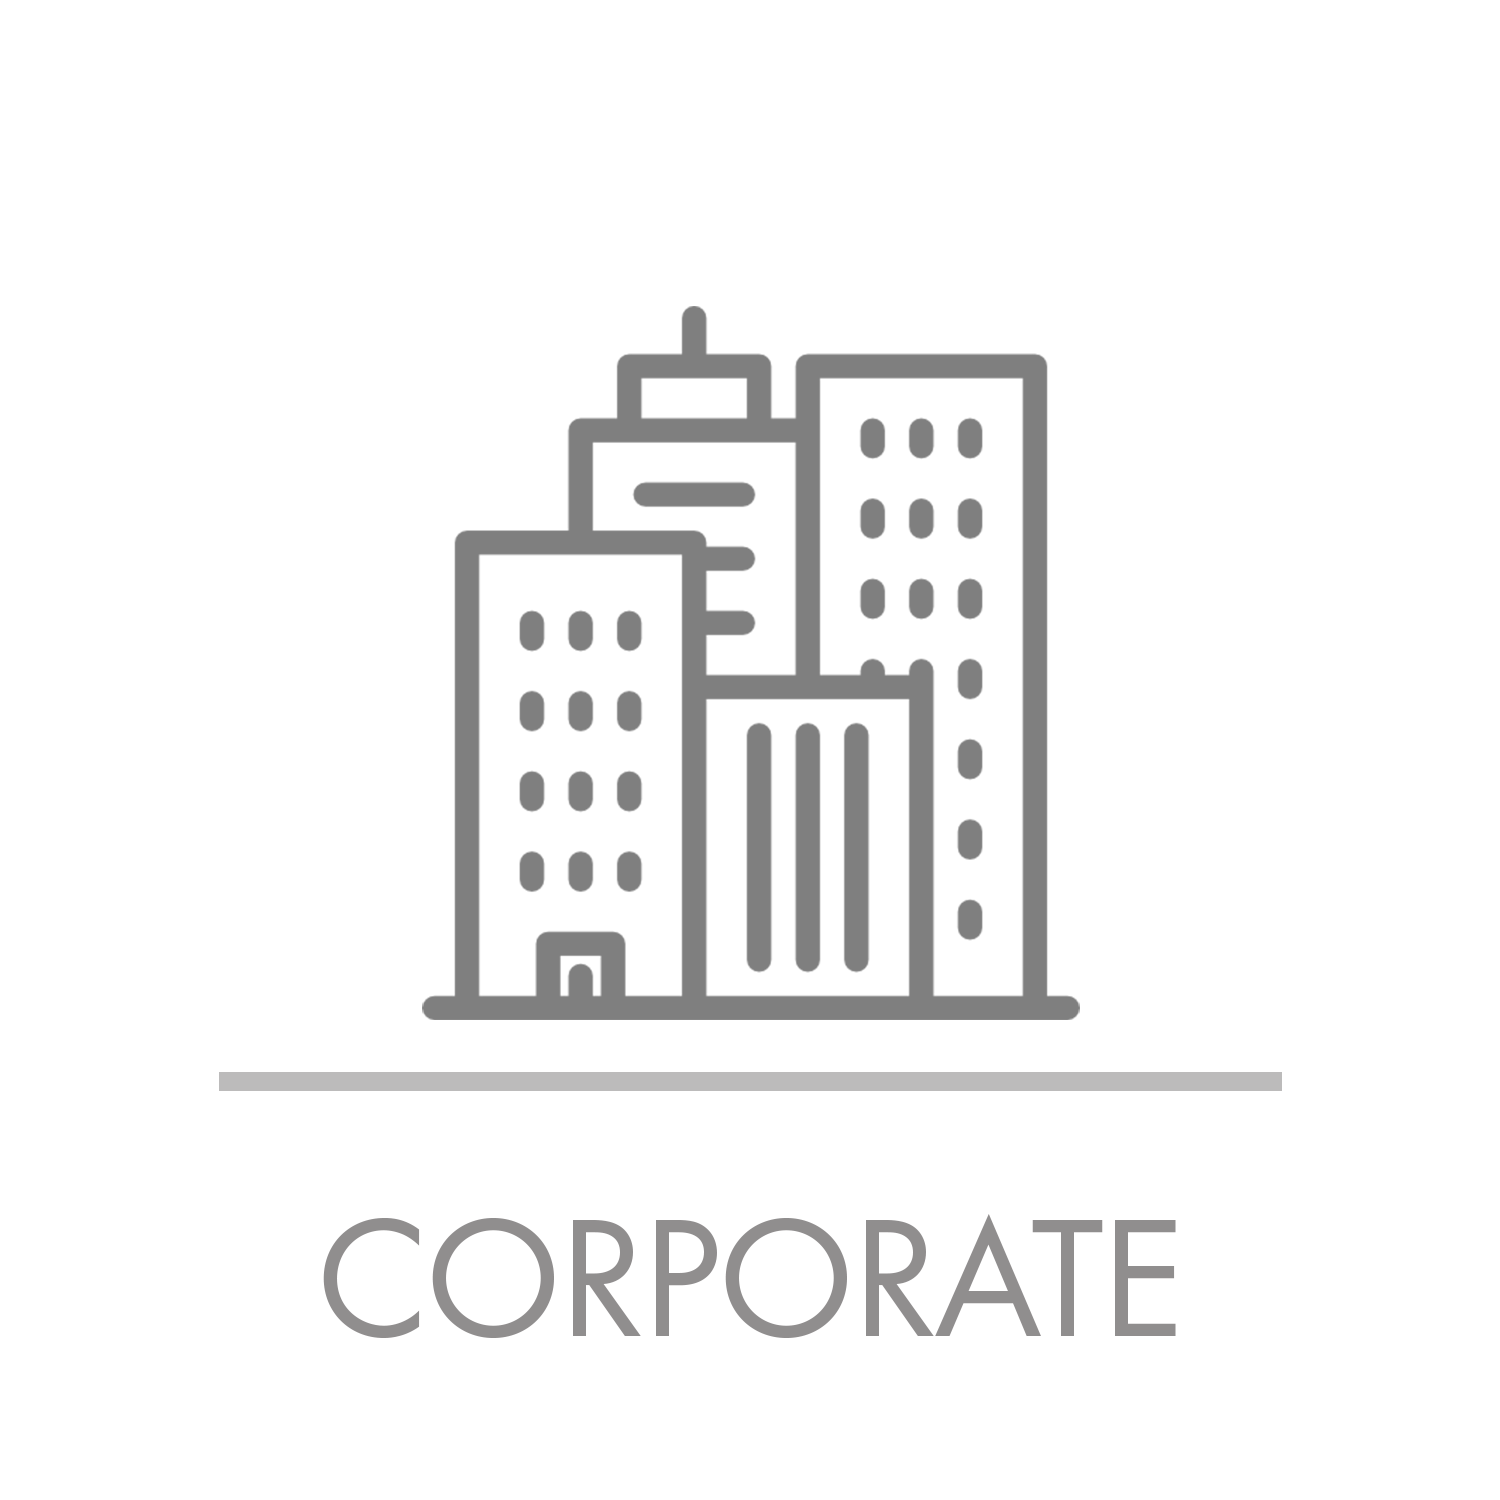 Corp.png